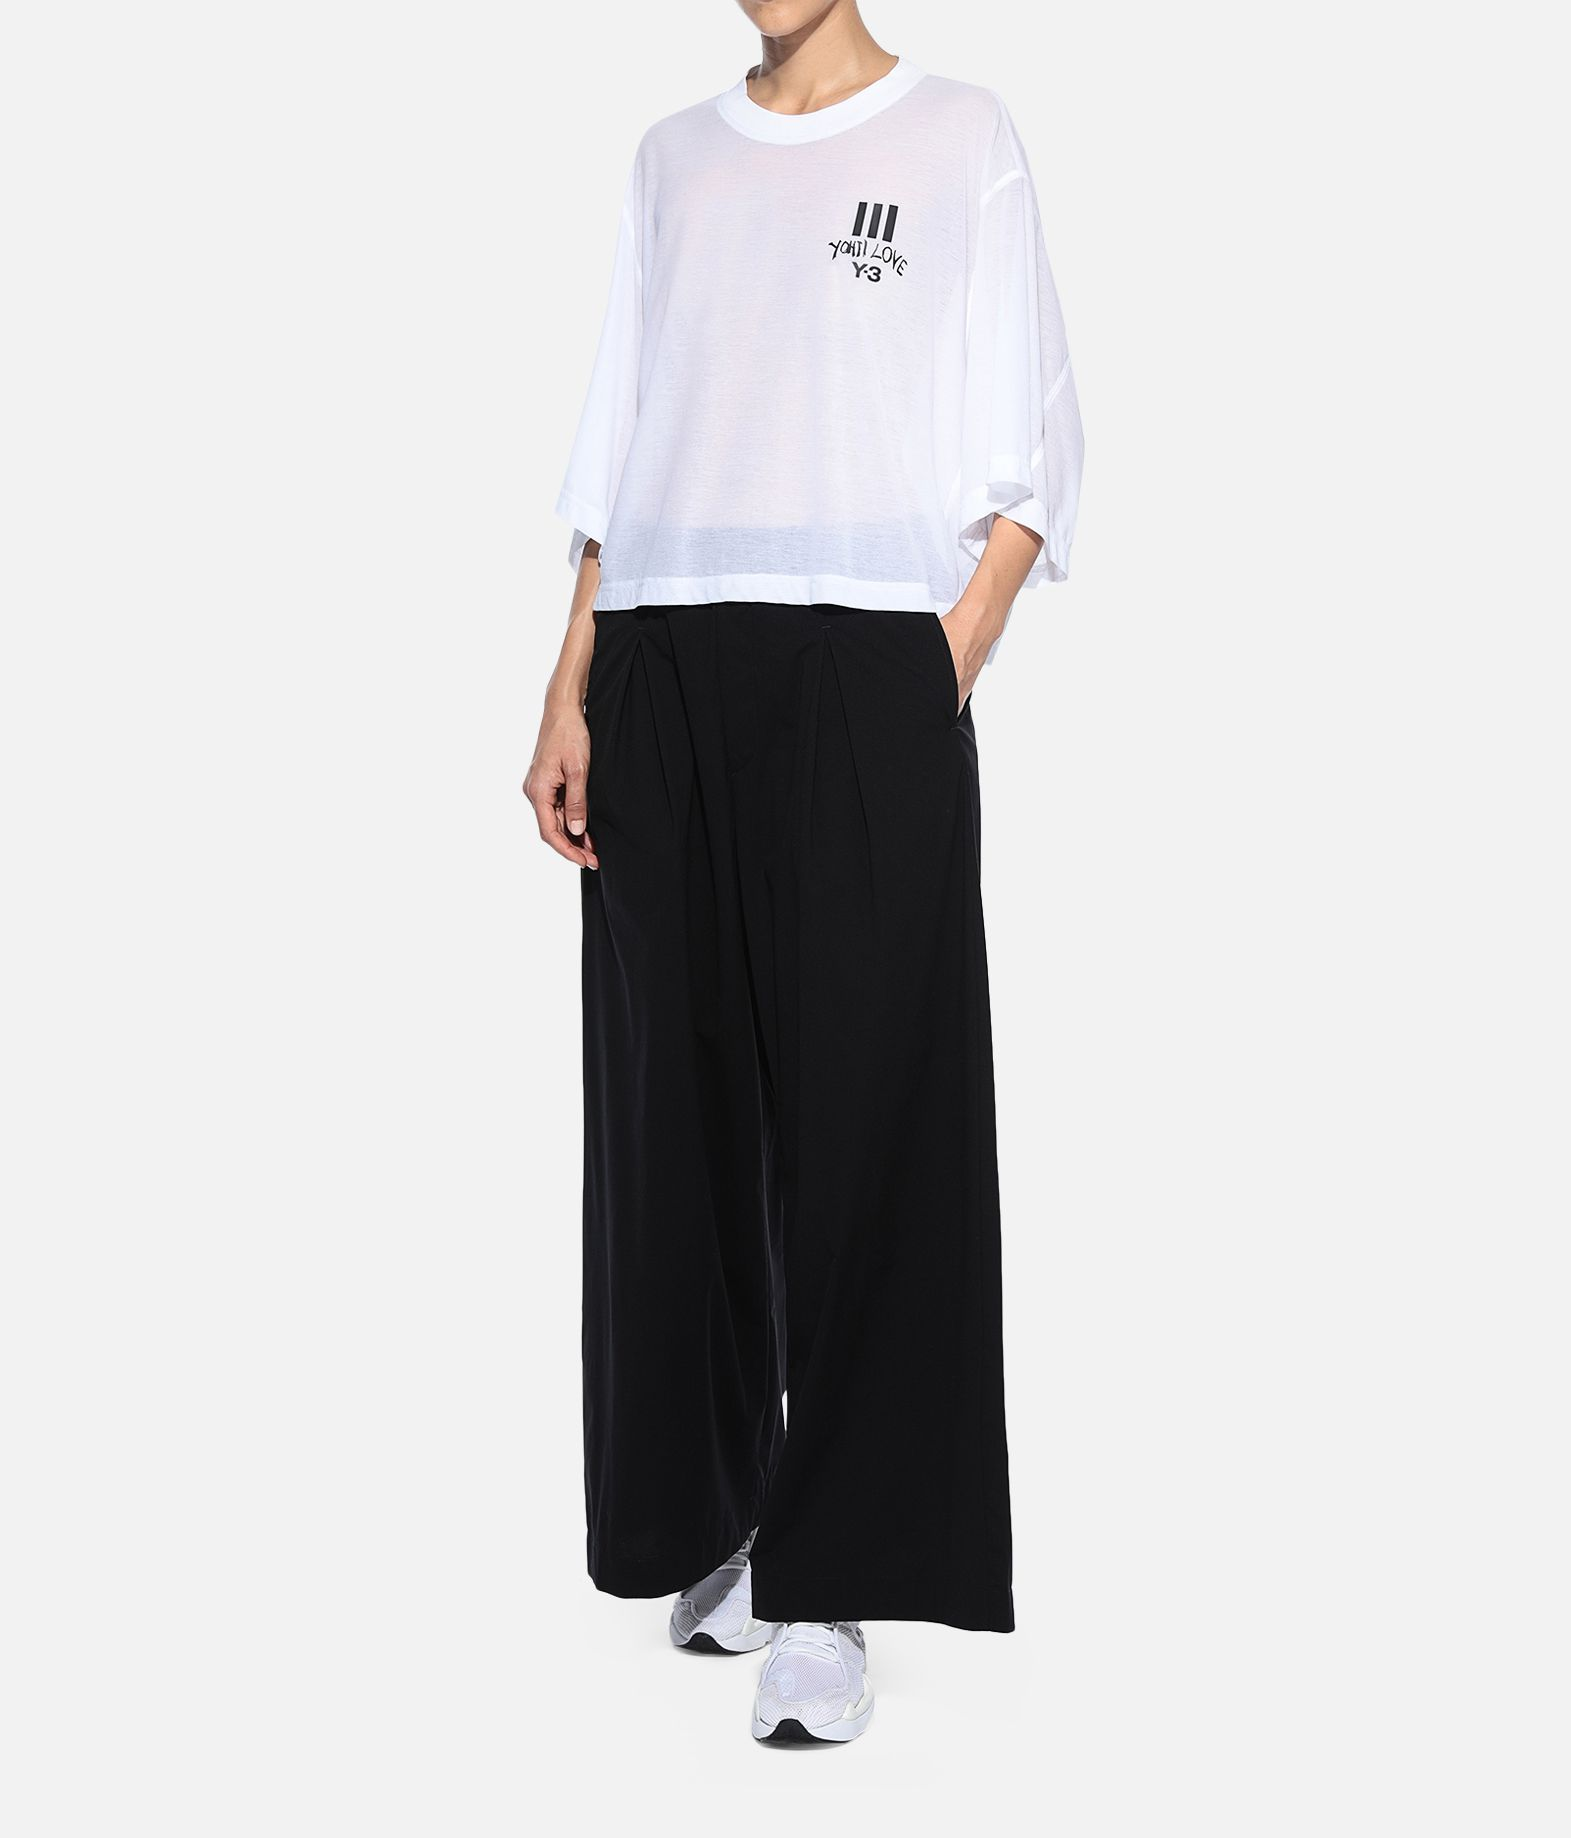 Y-3 Y-3 Yohji Love Sheer Tee Short sleeve t-shirt Woman a